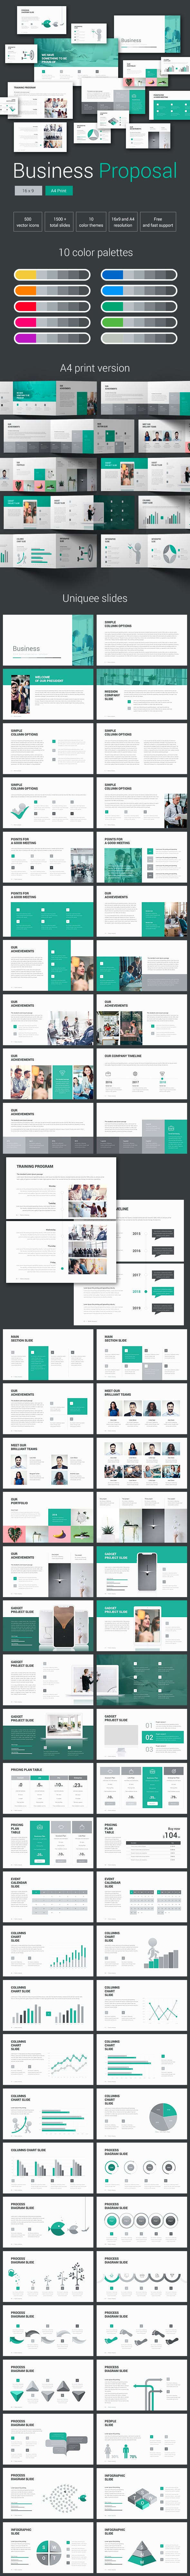 business proposal pitch powerpoint template by malis graphicriver